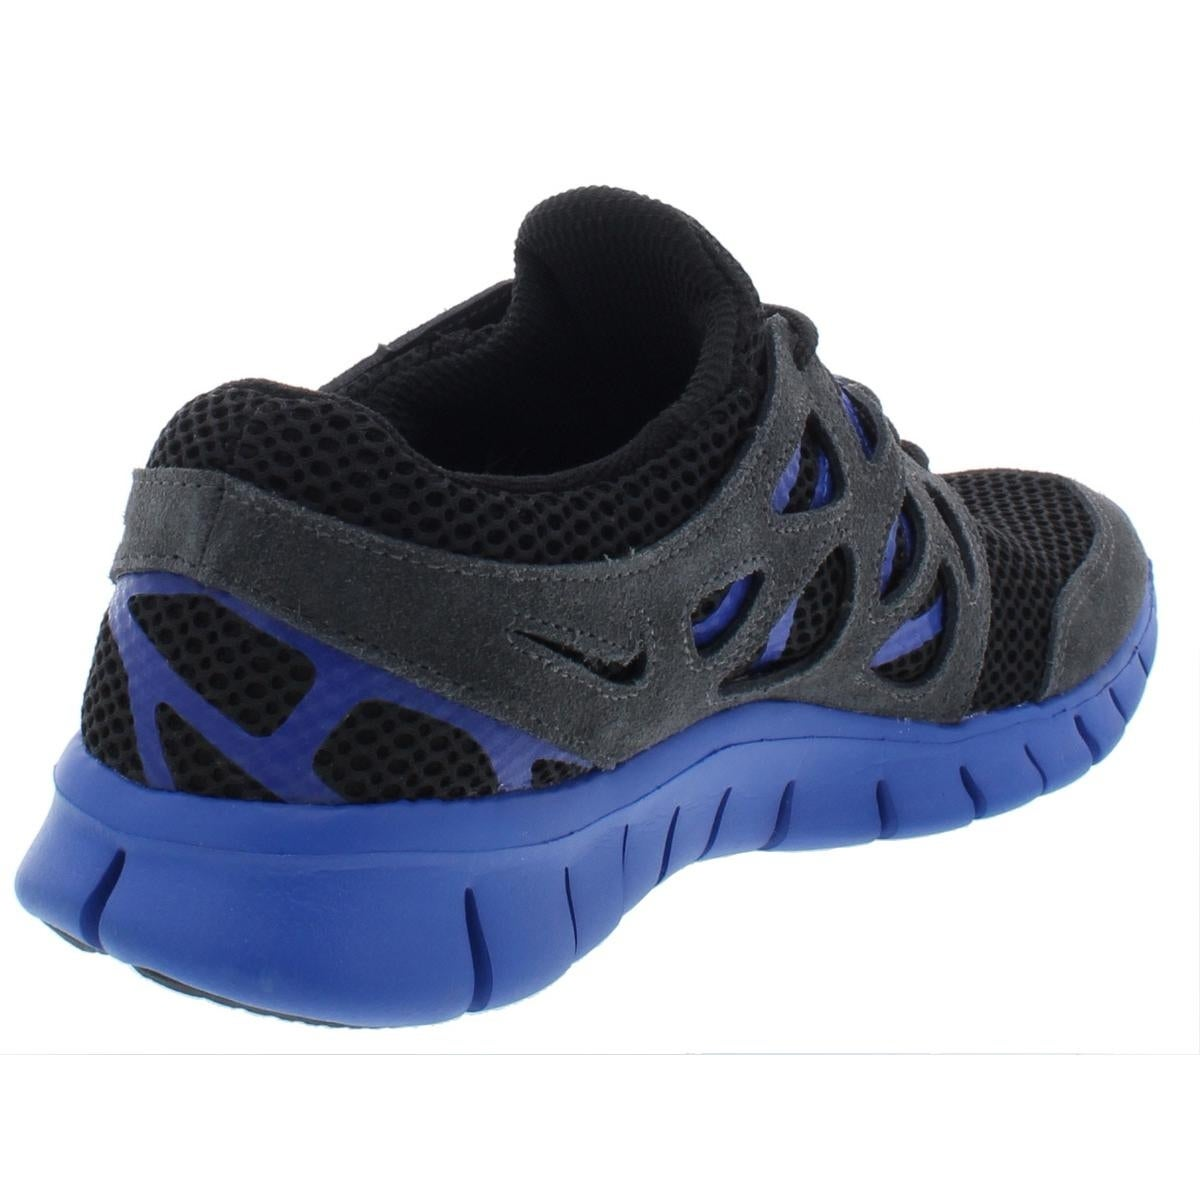 0c36e46806a56 Shop Nike Mens Nike Free Run 2 EXT Running Shoes Breathable Workout - Free  Shipping Today - Overstock - 27809499